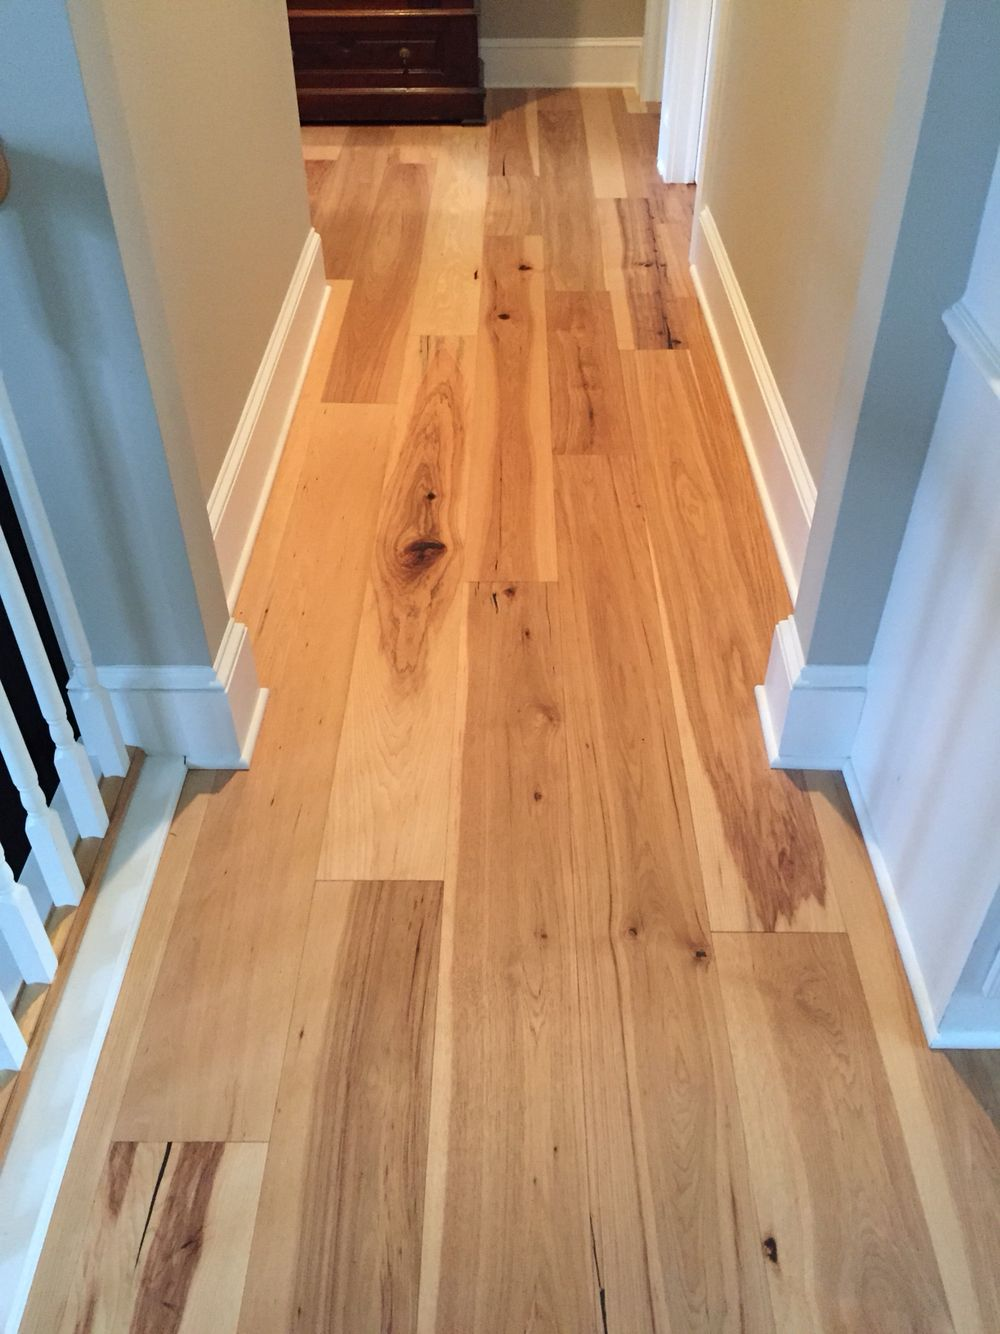 Natural Hickory Wide Plank Floors Wood Floors Wide Plank Hickory Wood Floors Hickory Flooring